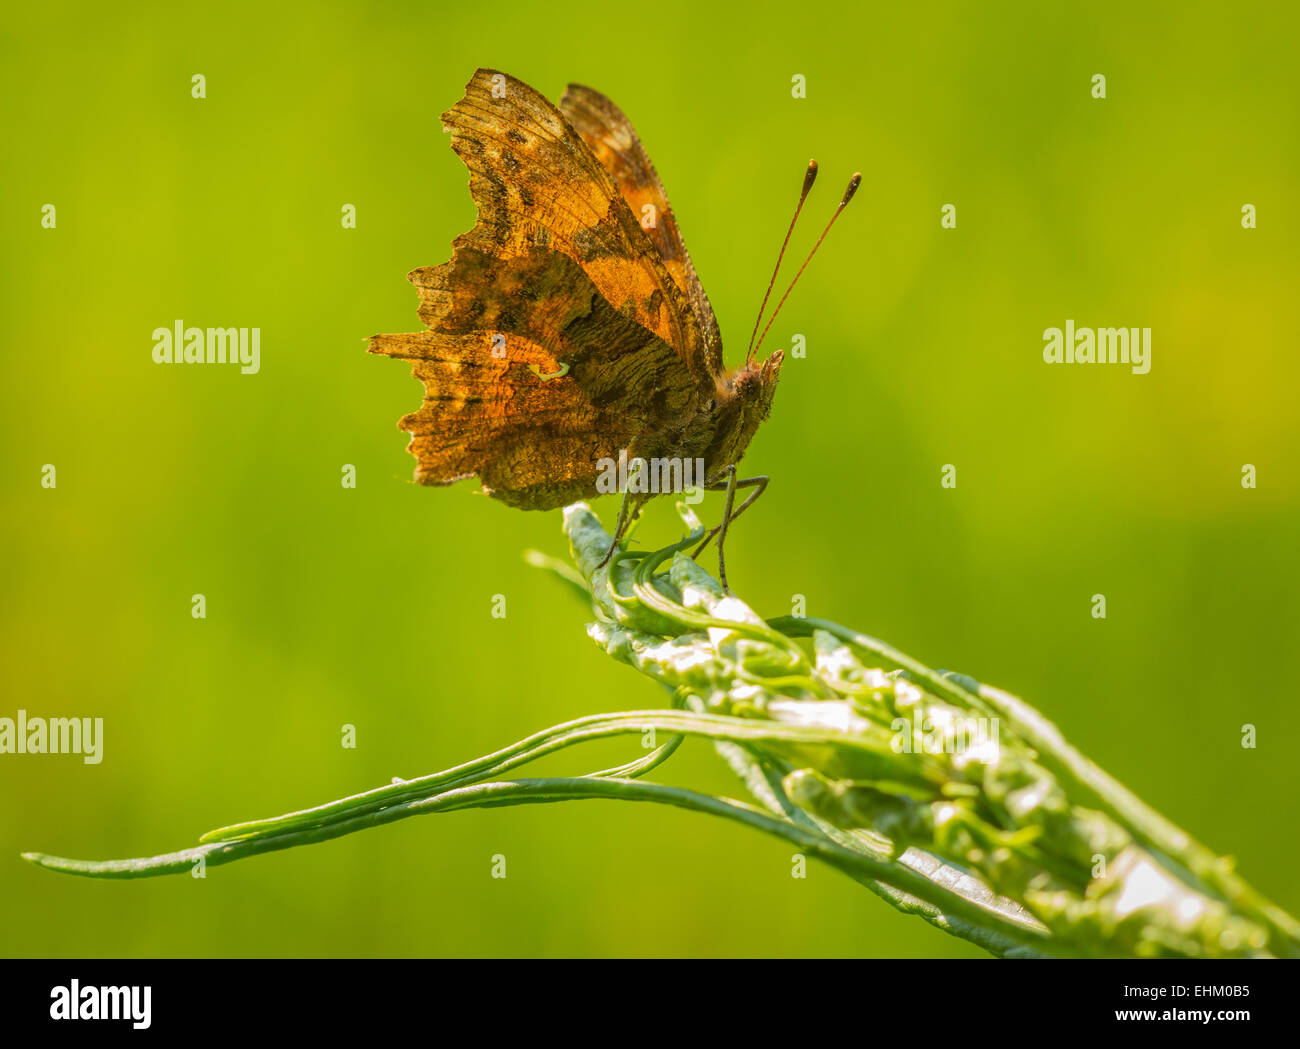 Comma butterfly (Polygonia c-album) resting on vegetaion in grassland - Stock Image